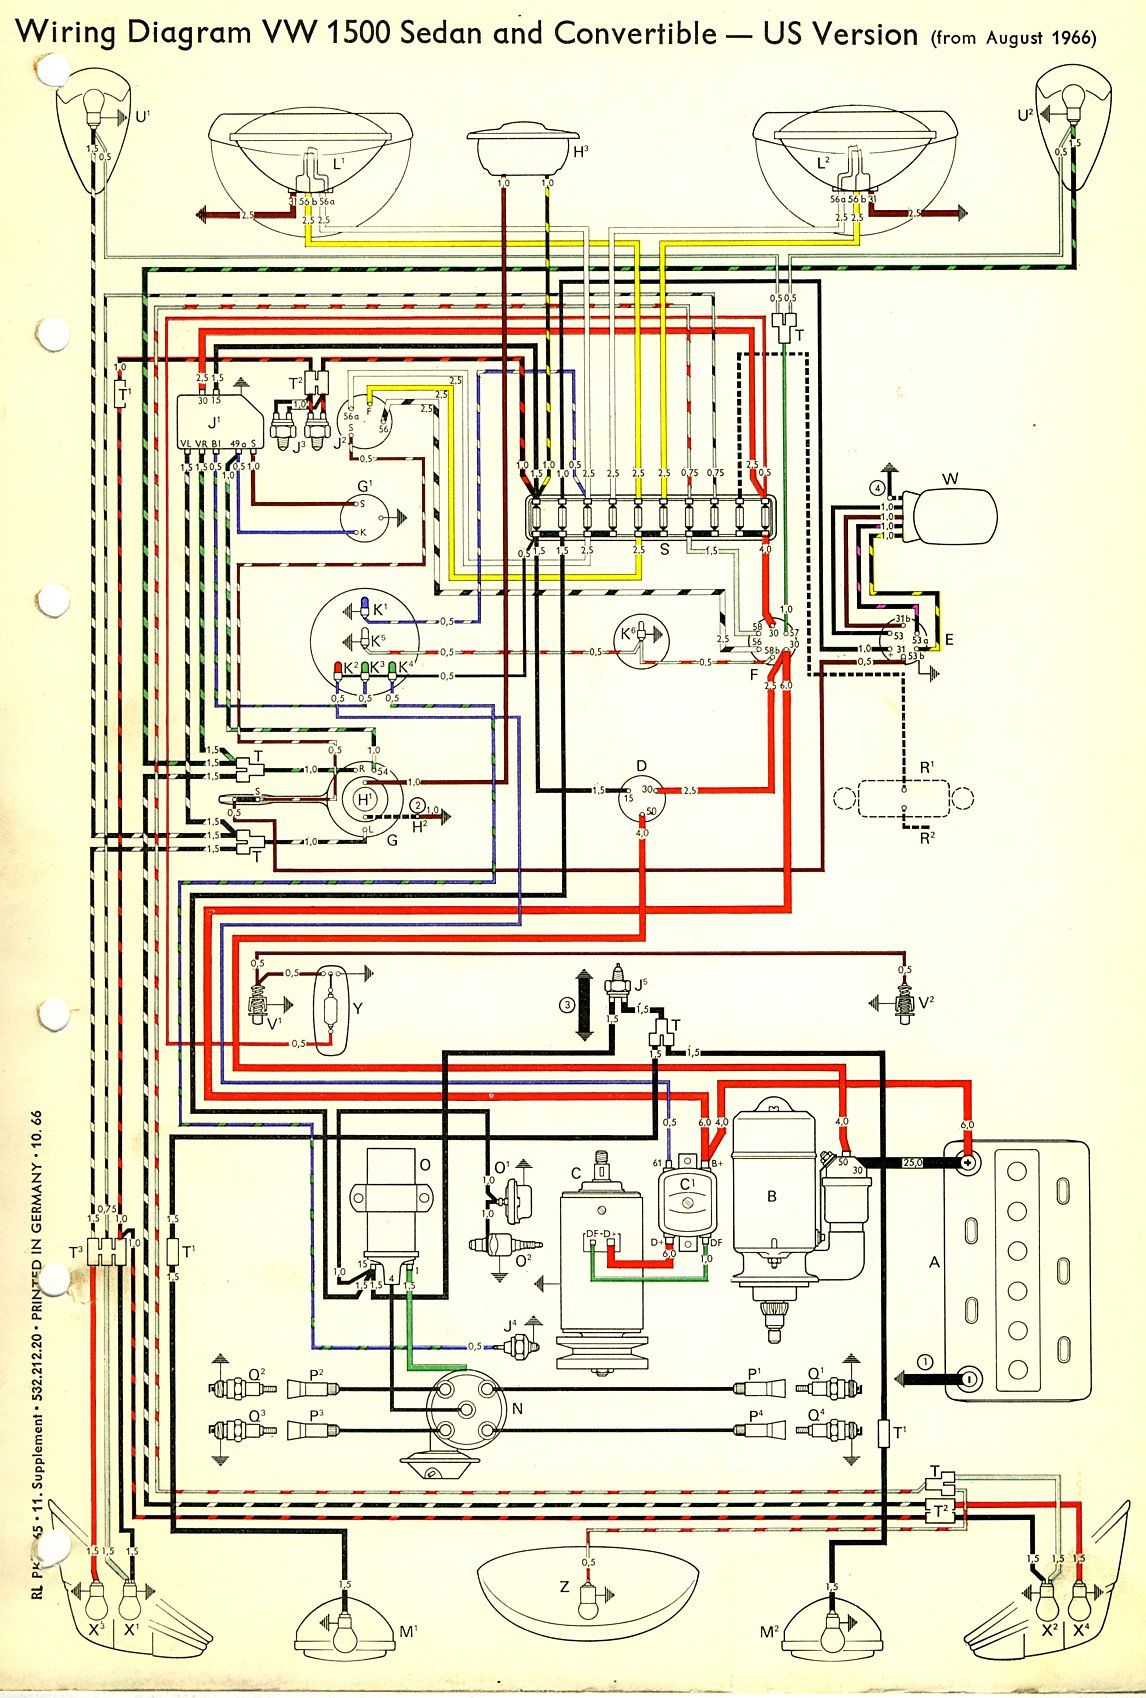 1adf990c0efb617c789fdd21338448b0 1967 beetle wiring diagram (usa) thegoldenbug com best 1967 vw 1971 vw bus wiring diagram at n-0.co